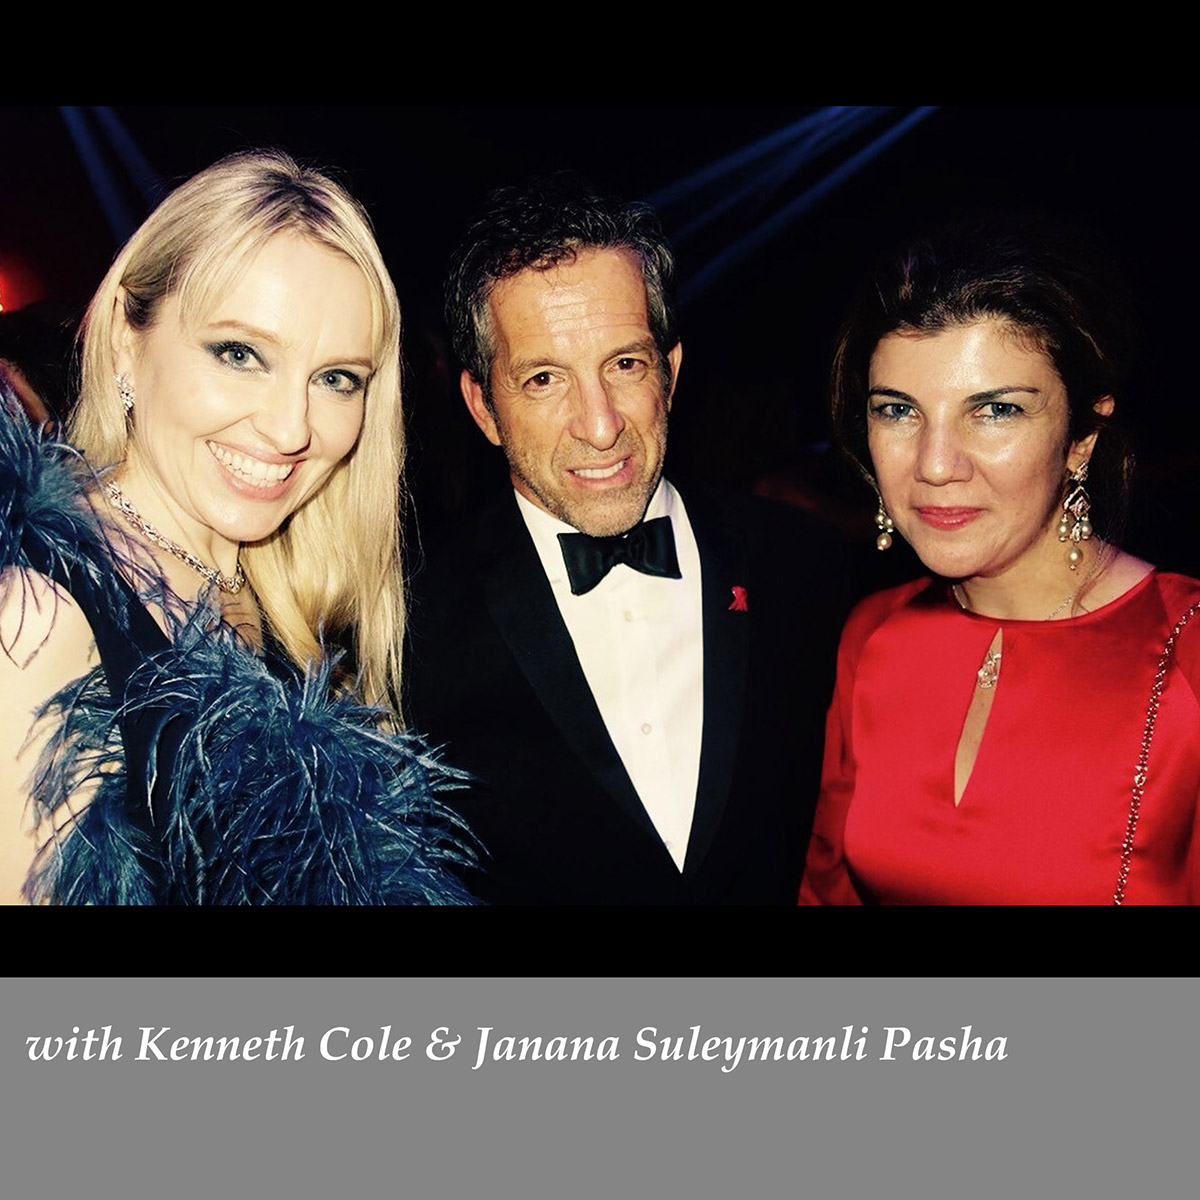 with-Kenneth-Cole-&-Janana-Suleymanli-Pasha